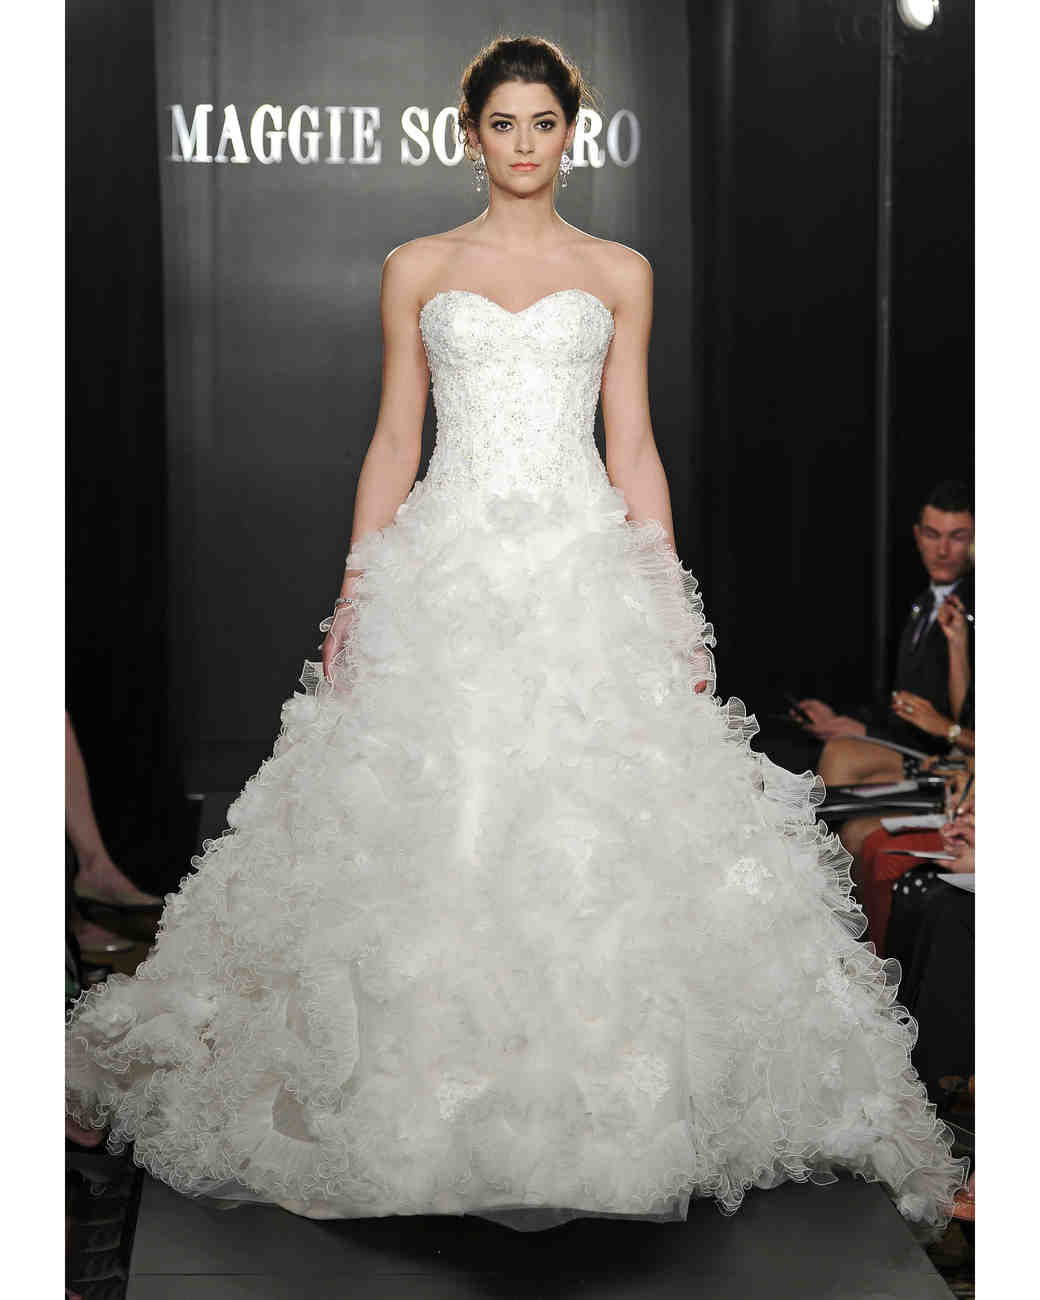 maggie-sottero-spring2013-wd108745-008.jpg